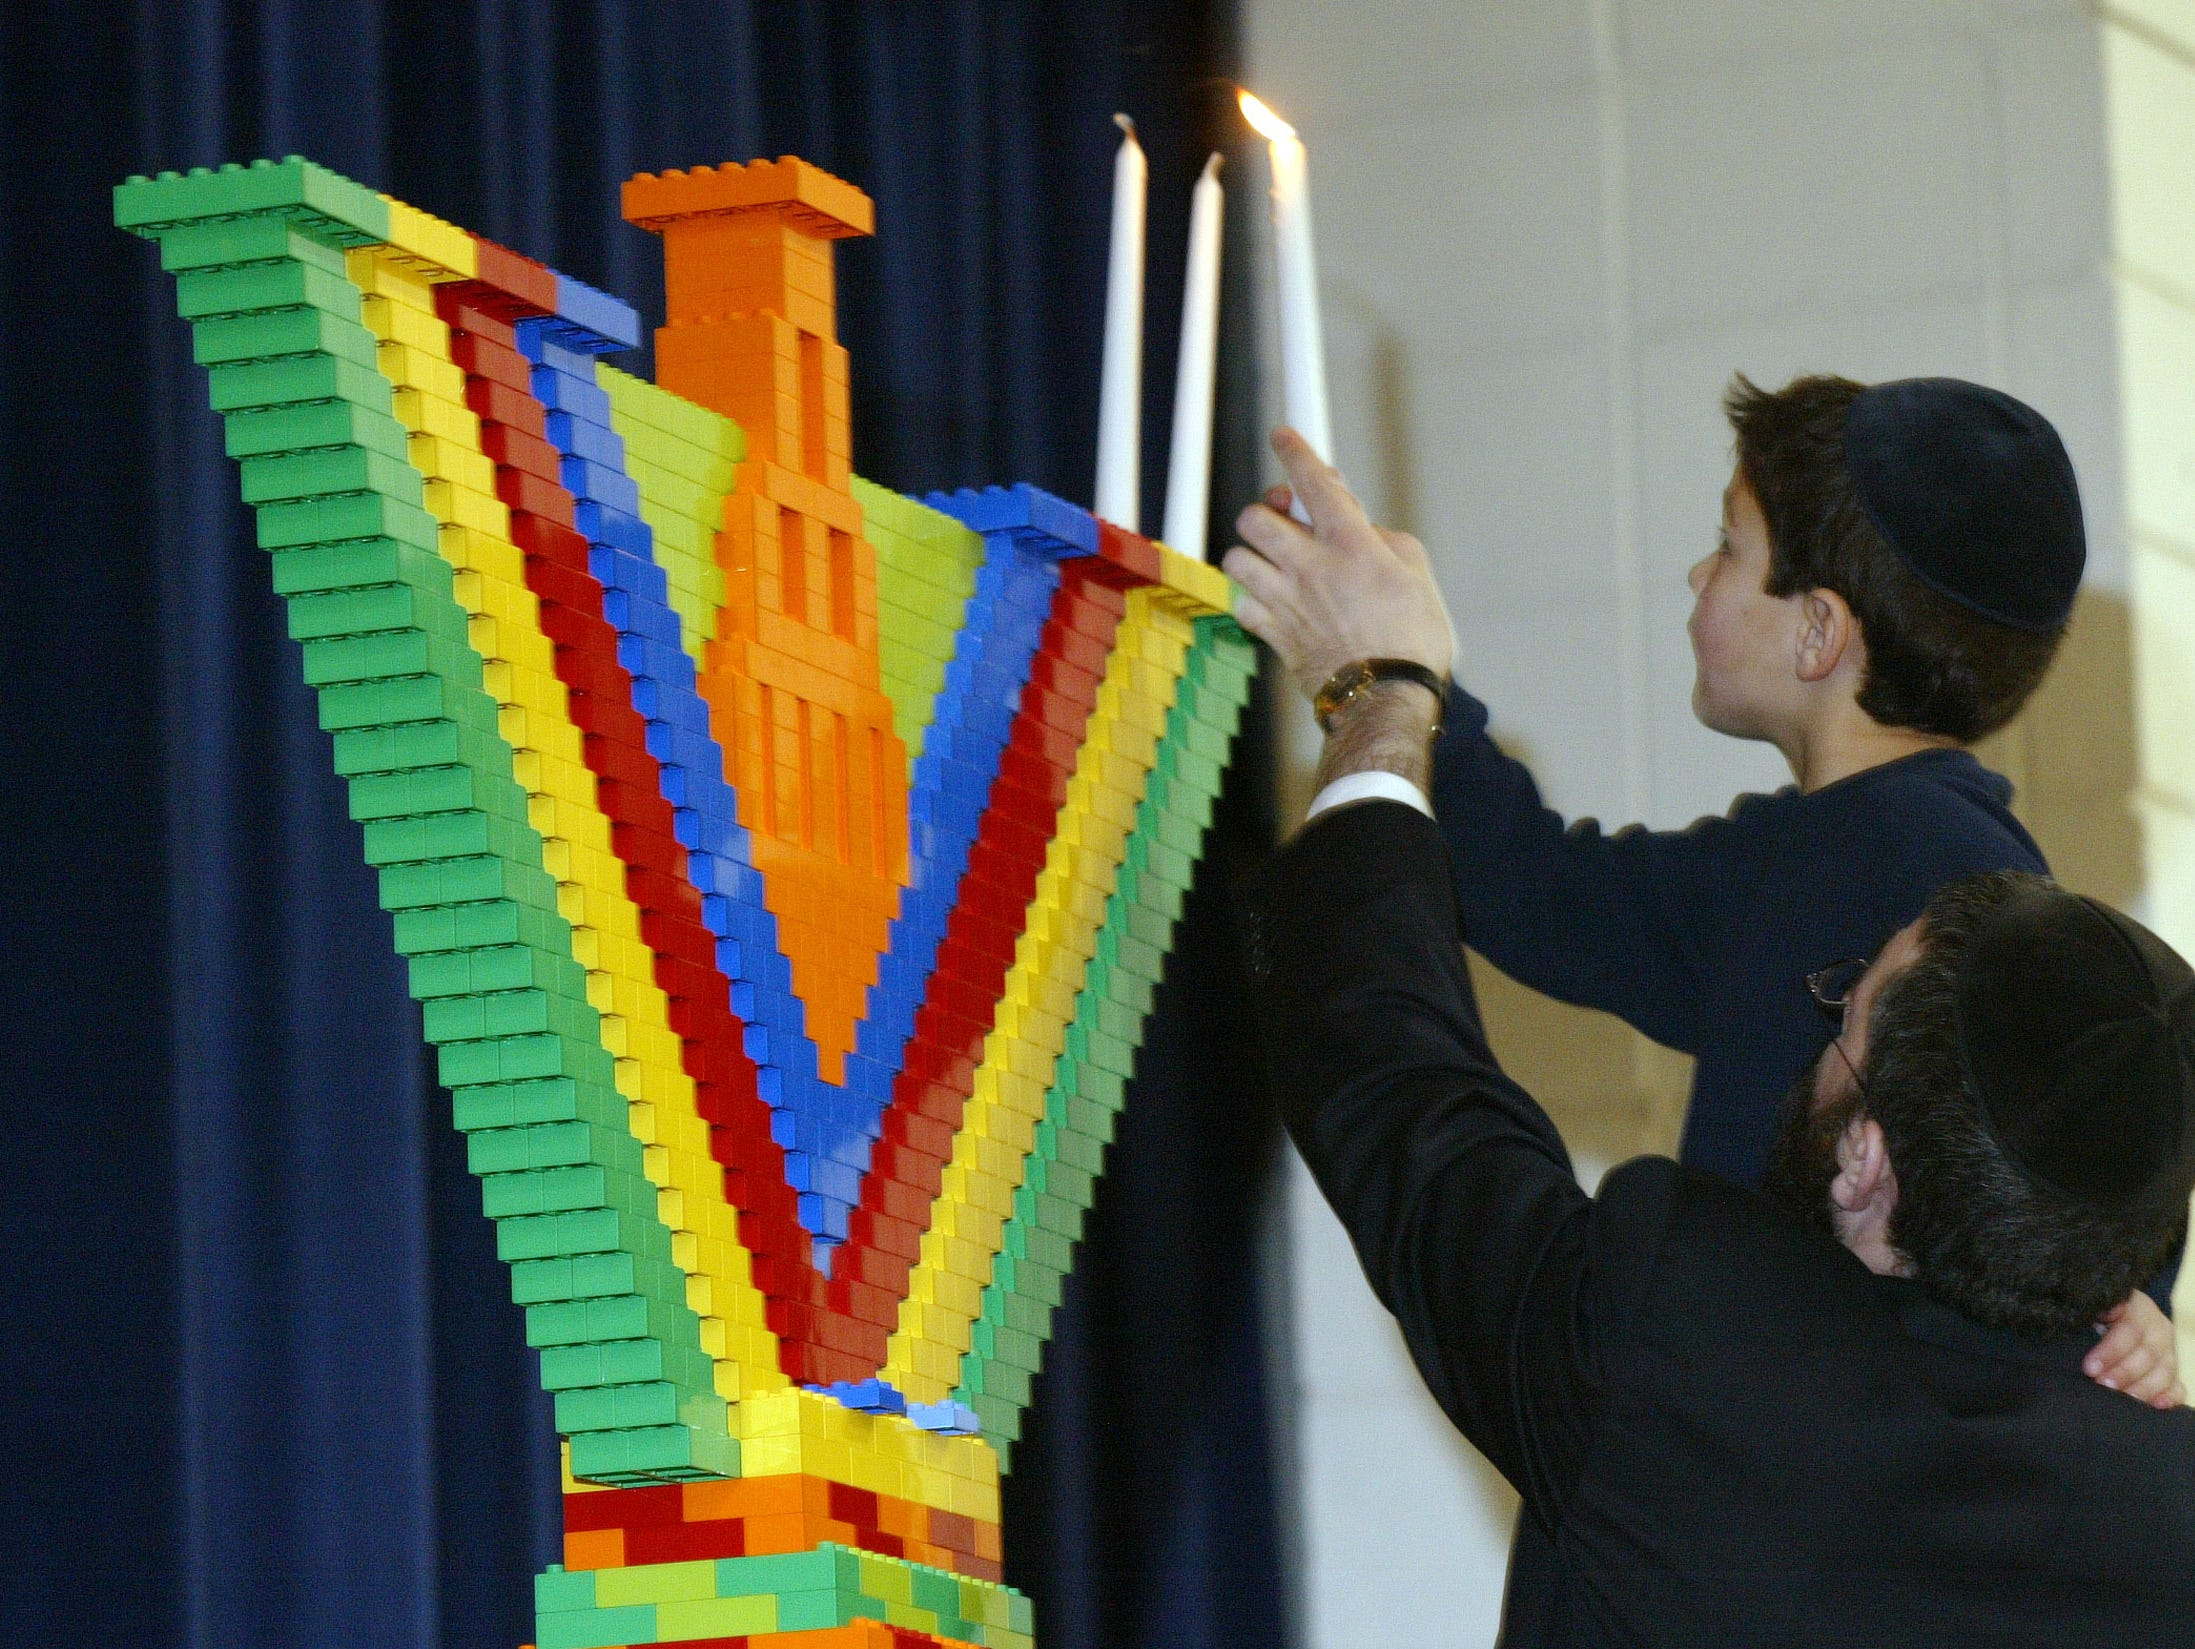 Because his birthday falls on Dec. 25, which is the beginning of Hanukkah, Yakov Drumm, 6, of Knoxville helped Rabbi Yossi Wilhelm light the 10-foot menorah built with building blocks by children at the Arnstein Jewish Community Center. 12/26/05